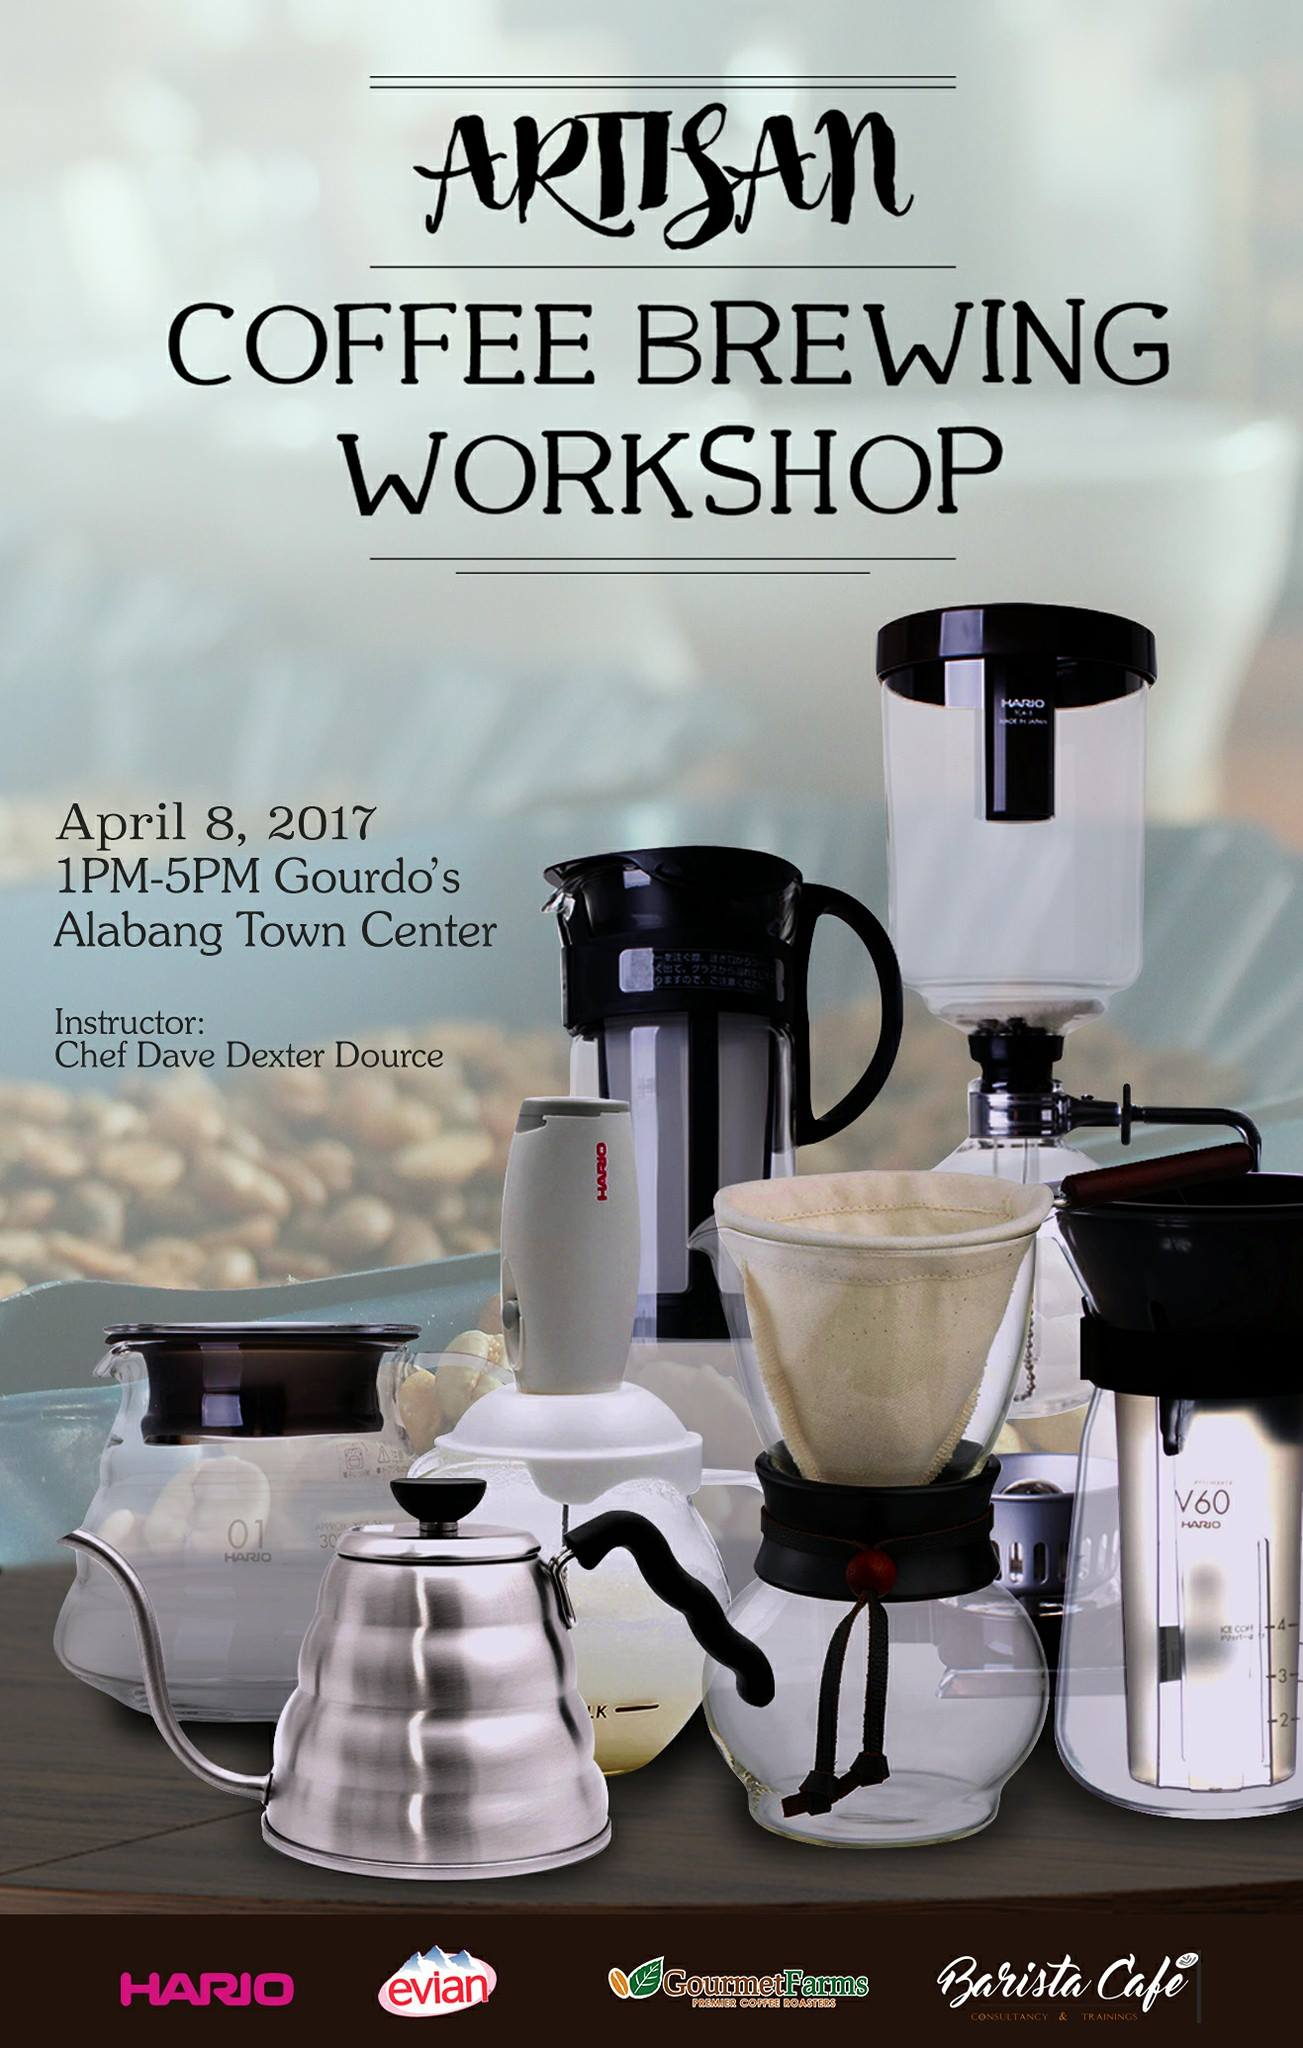 Artisan Coffee Brewing Workshop at @Gourdos.